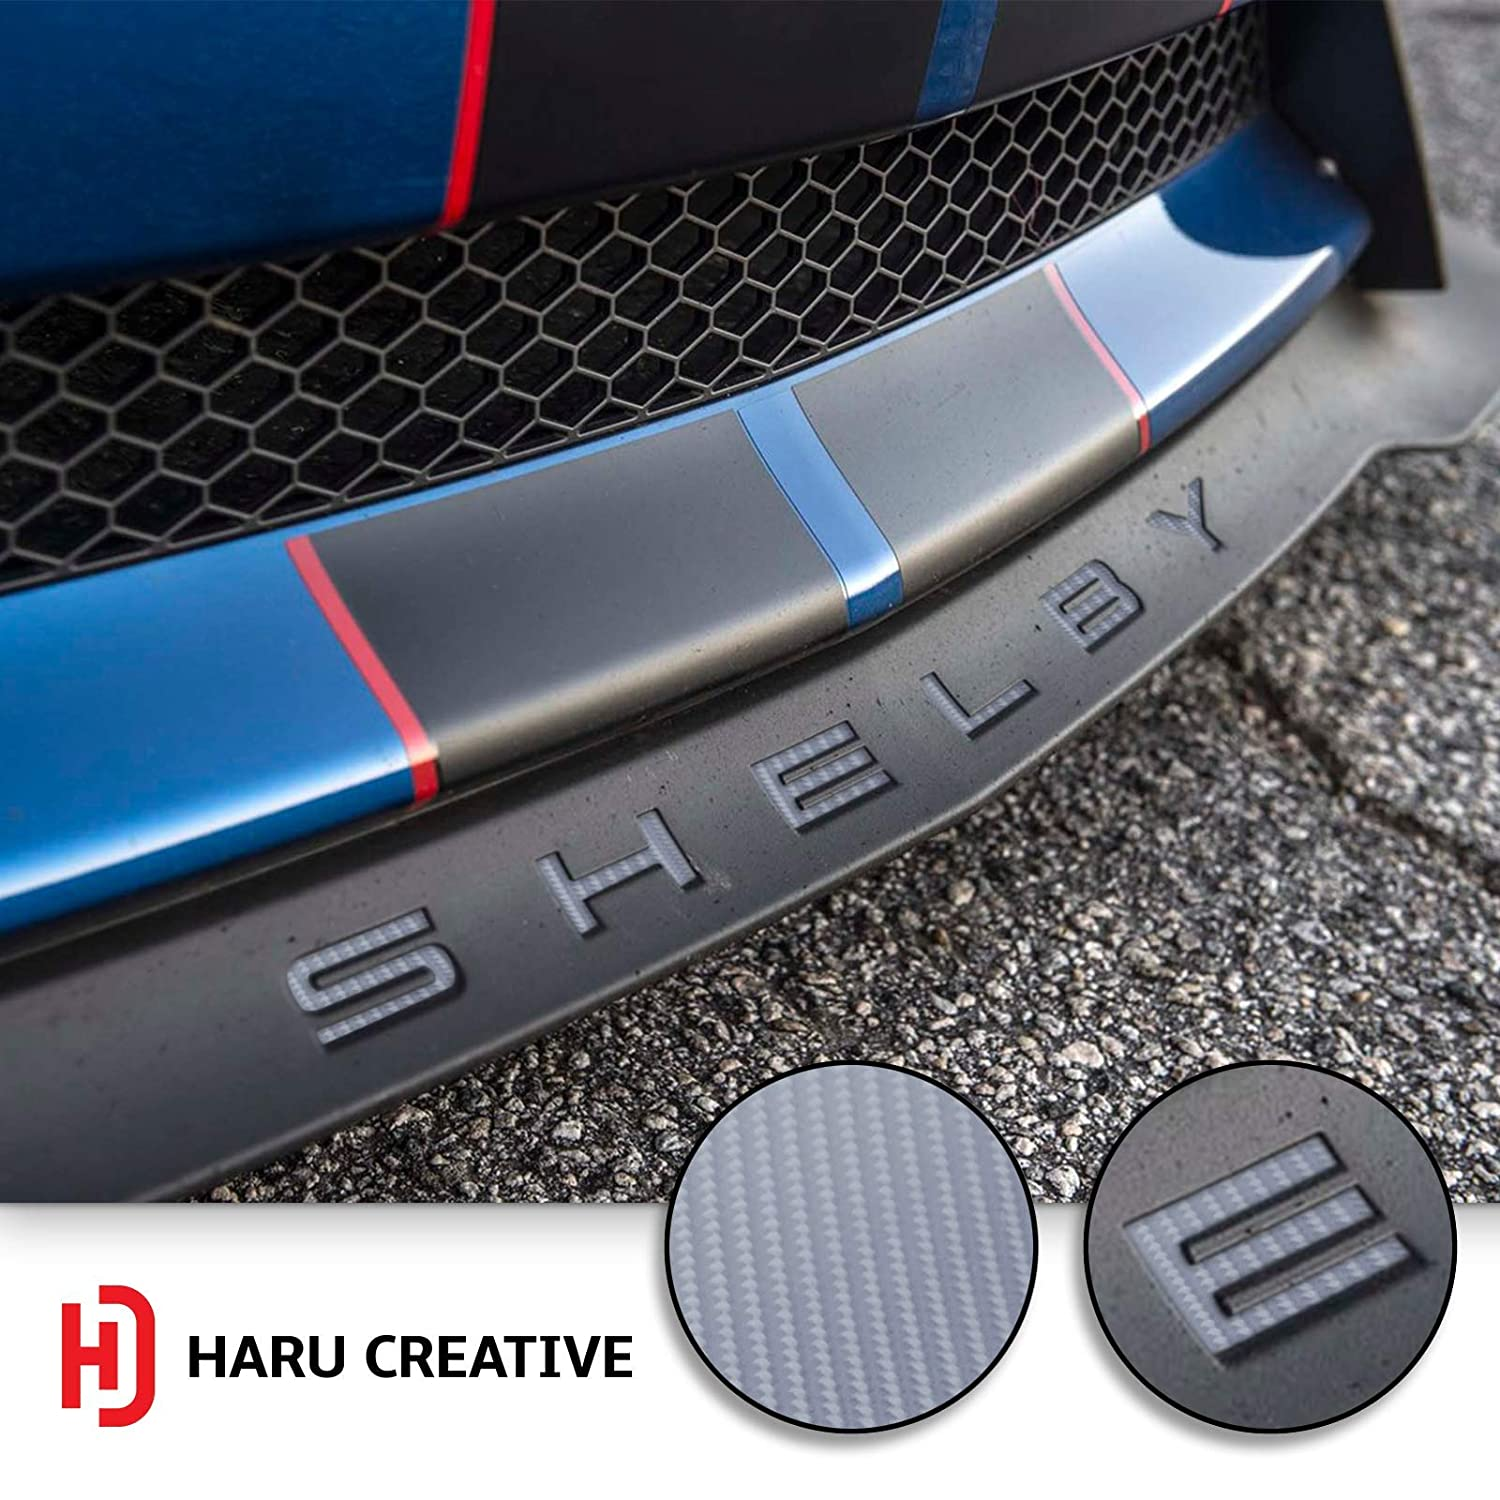 Haru Creative 4D Carbon Fiber Silver Front Splitter Lip Hood Grille Letter Insert Overlay Vinyl Decal Compatible with and Fits Mustang Shelby GT350 2015-2018